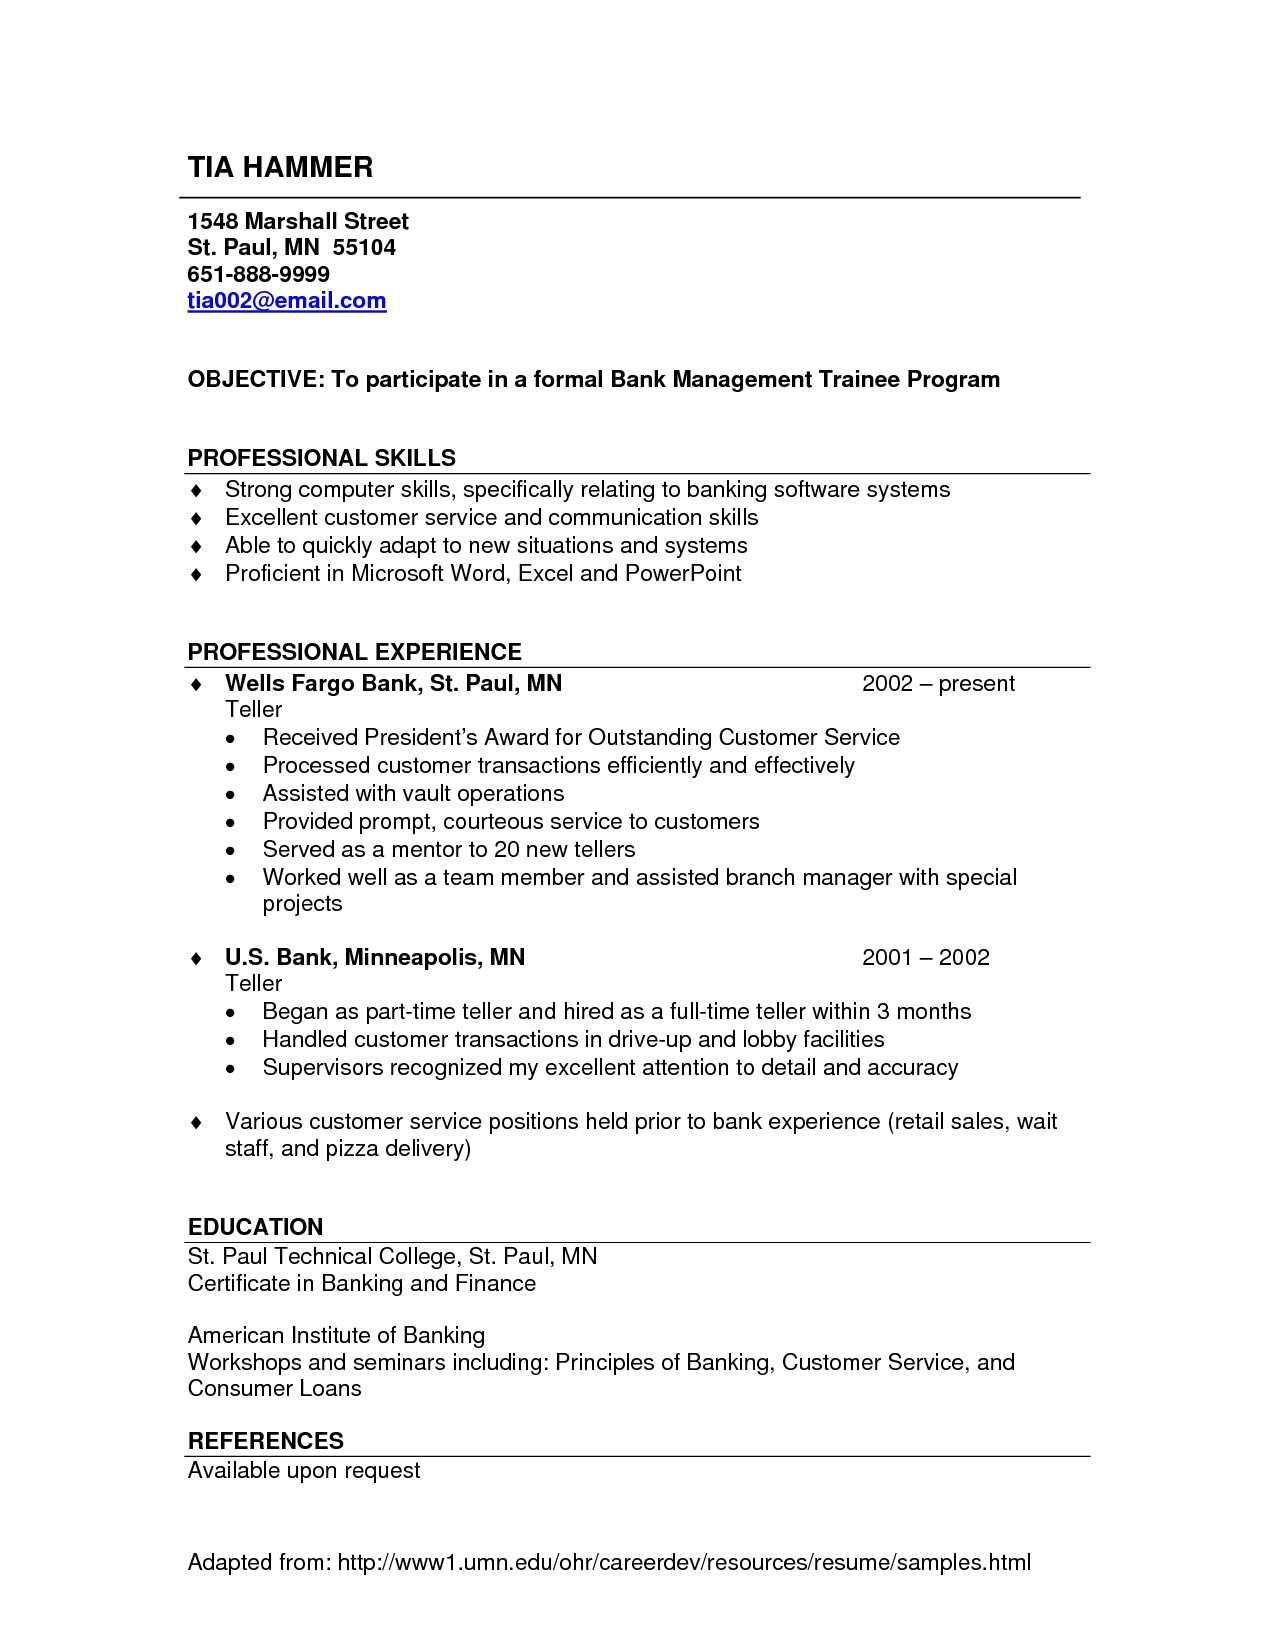 Resume Template for Supervisor Position - Apa Resume Template New Examples A Resume Fresh Resume Examples 0d